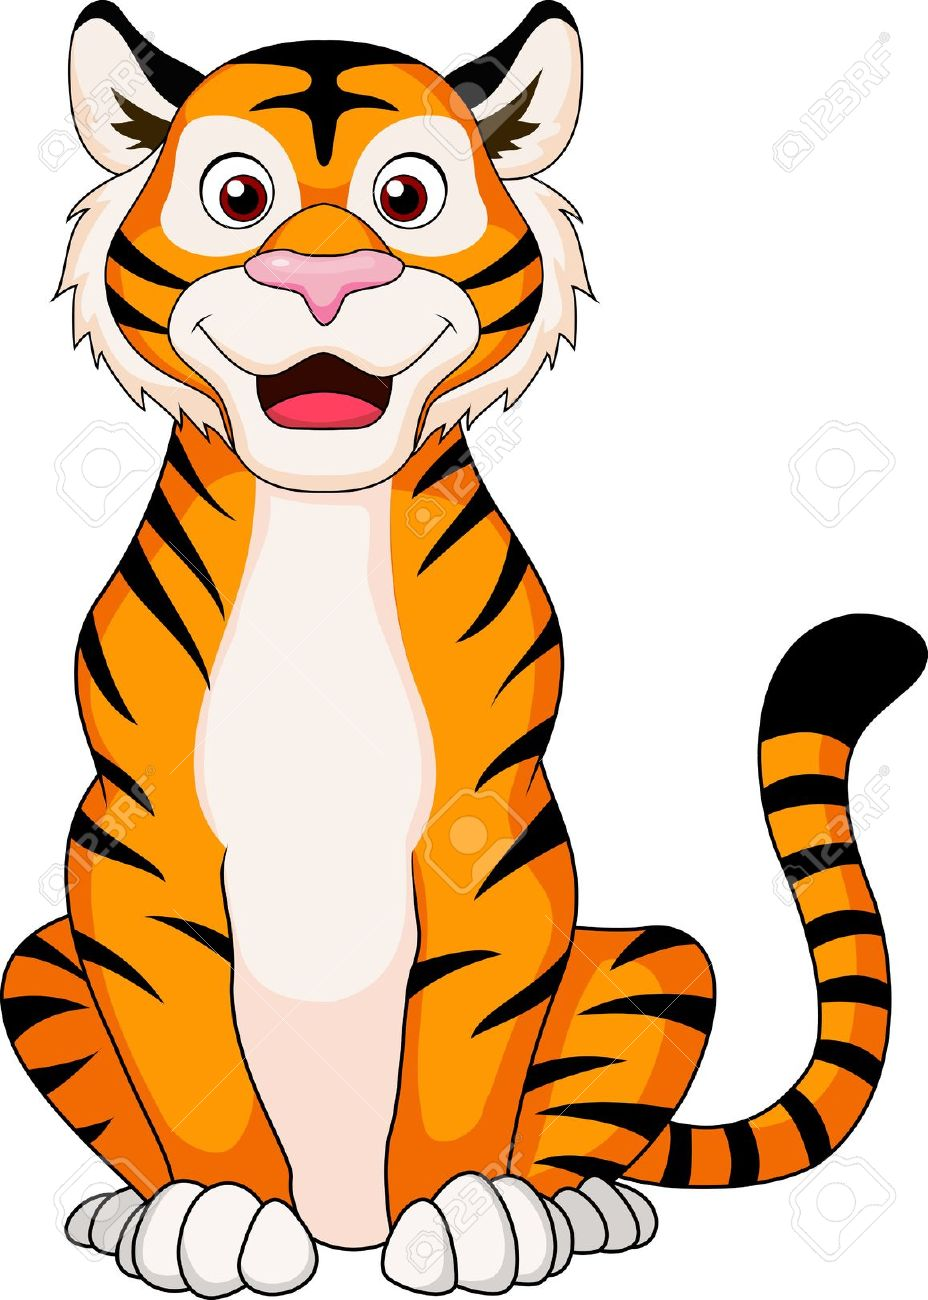 Happy tiger clipart black and white download Tiger Clipart | Free download best Tiger Clipart on ClipArtMag.com black and white download